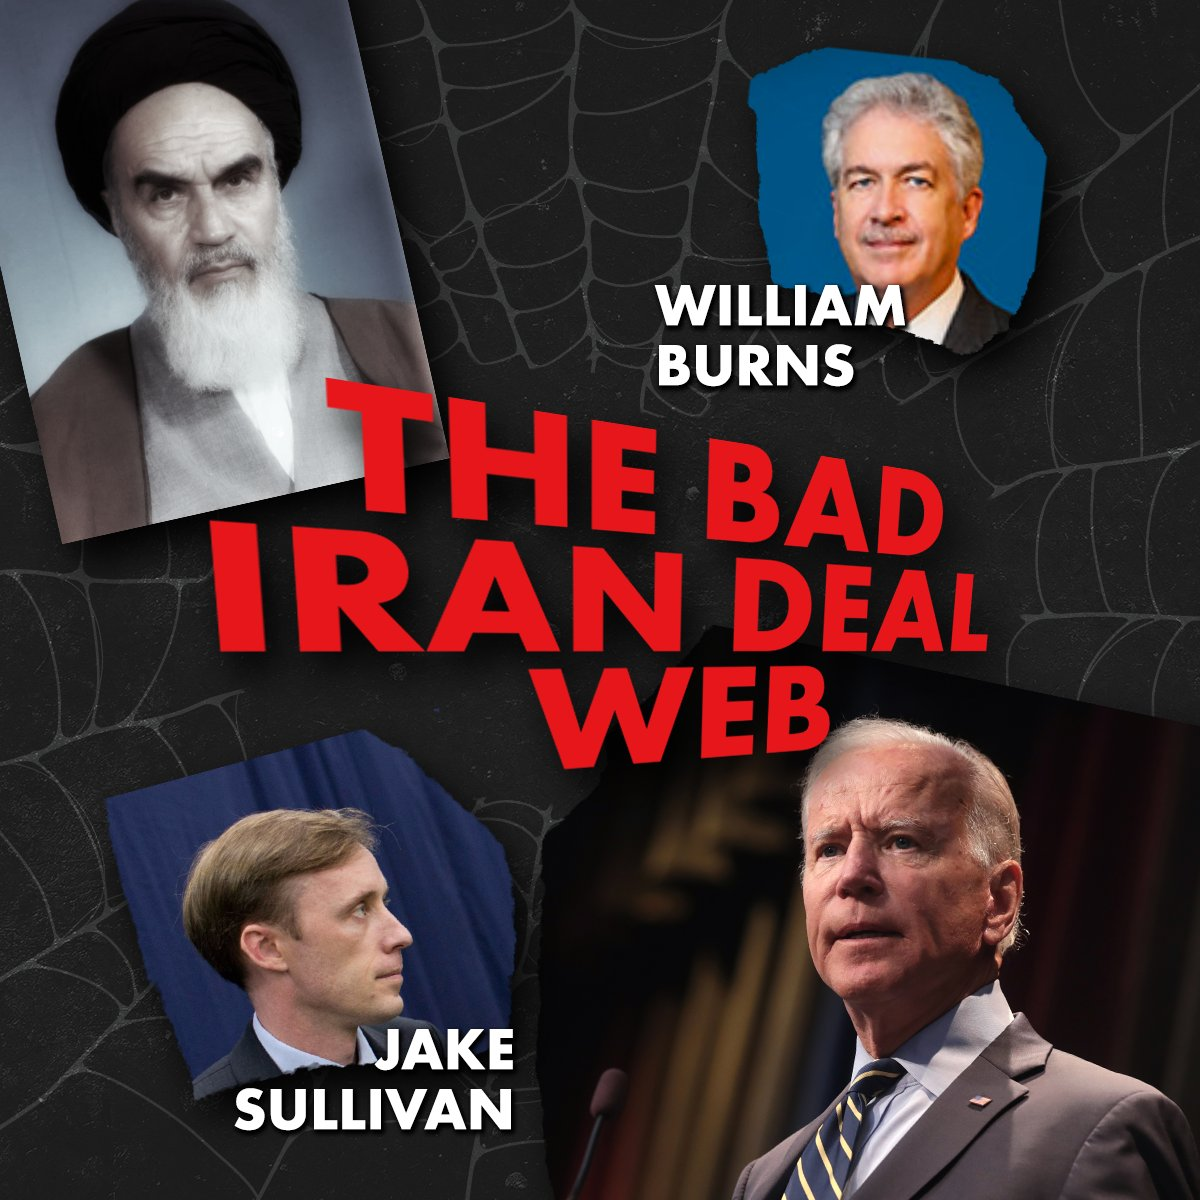 Biden's CIA director, William Burns, opened the initial backchannel conversations that lead to the bad Iran Deal. https://t.co/zzn450mv7w